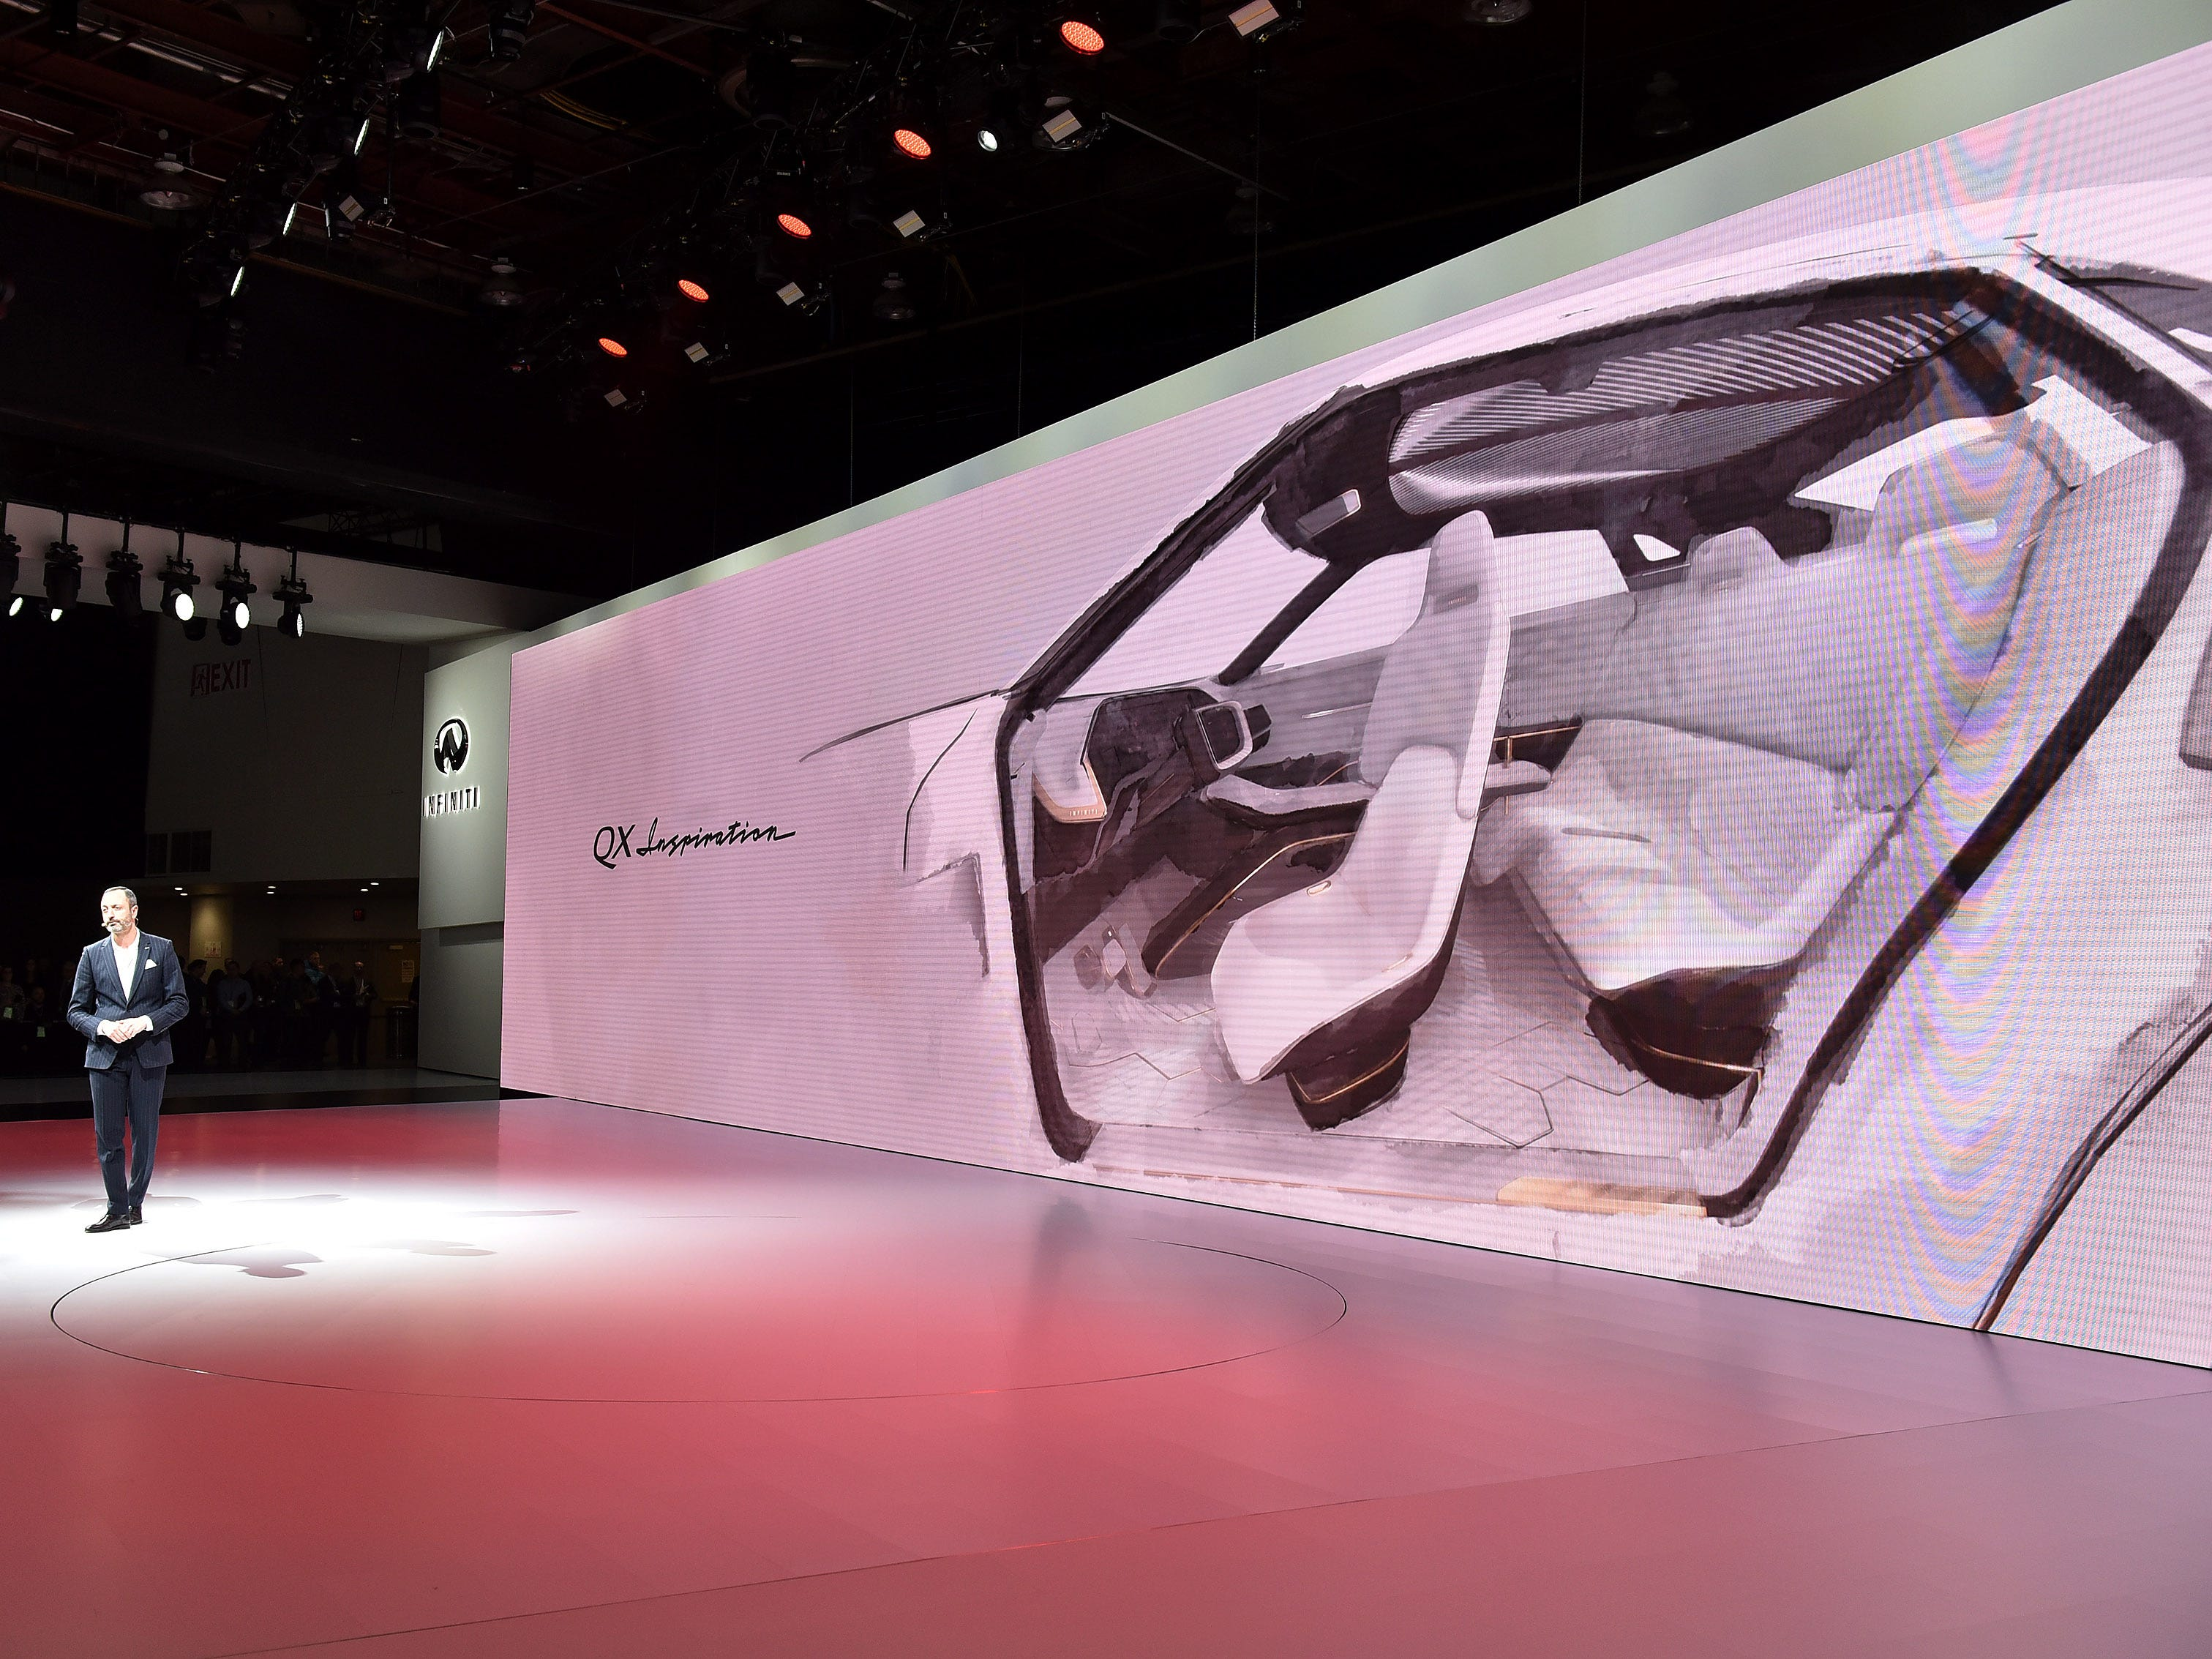 Karem Habib, executive design director, Infiniti Motor Company, talks about the Infiniti QX Inspiration concept vehicle, waiting for it to drive on stage, at their press event in Detroit, Monday. The QX Inspiration had technical issues and did not make it to the stage during the presser.